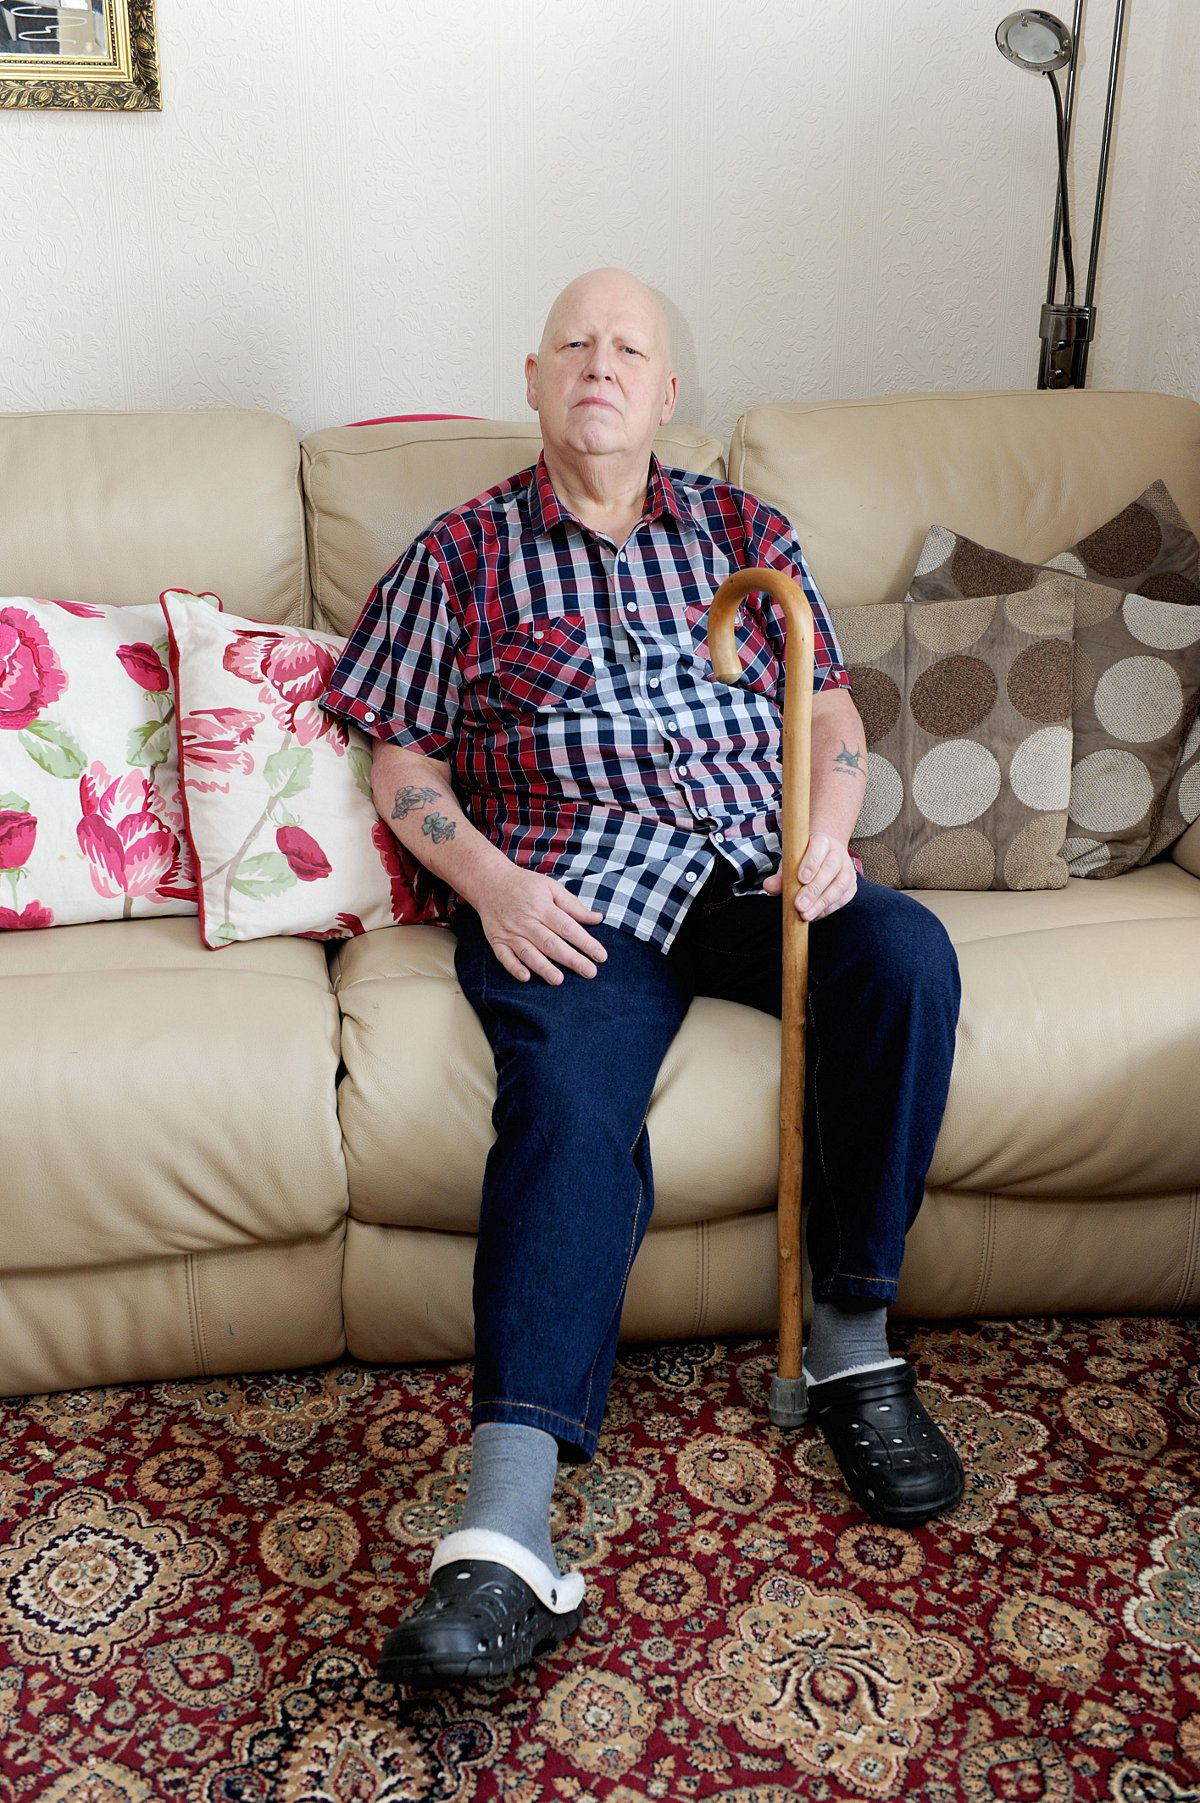 Alan Phelps has been waiting 20 months and six cancelled operations for a knee replacement.